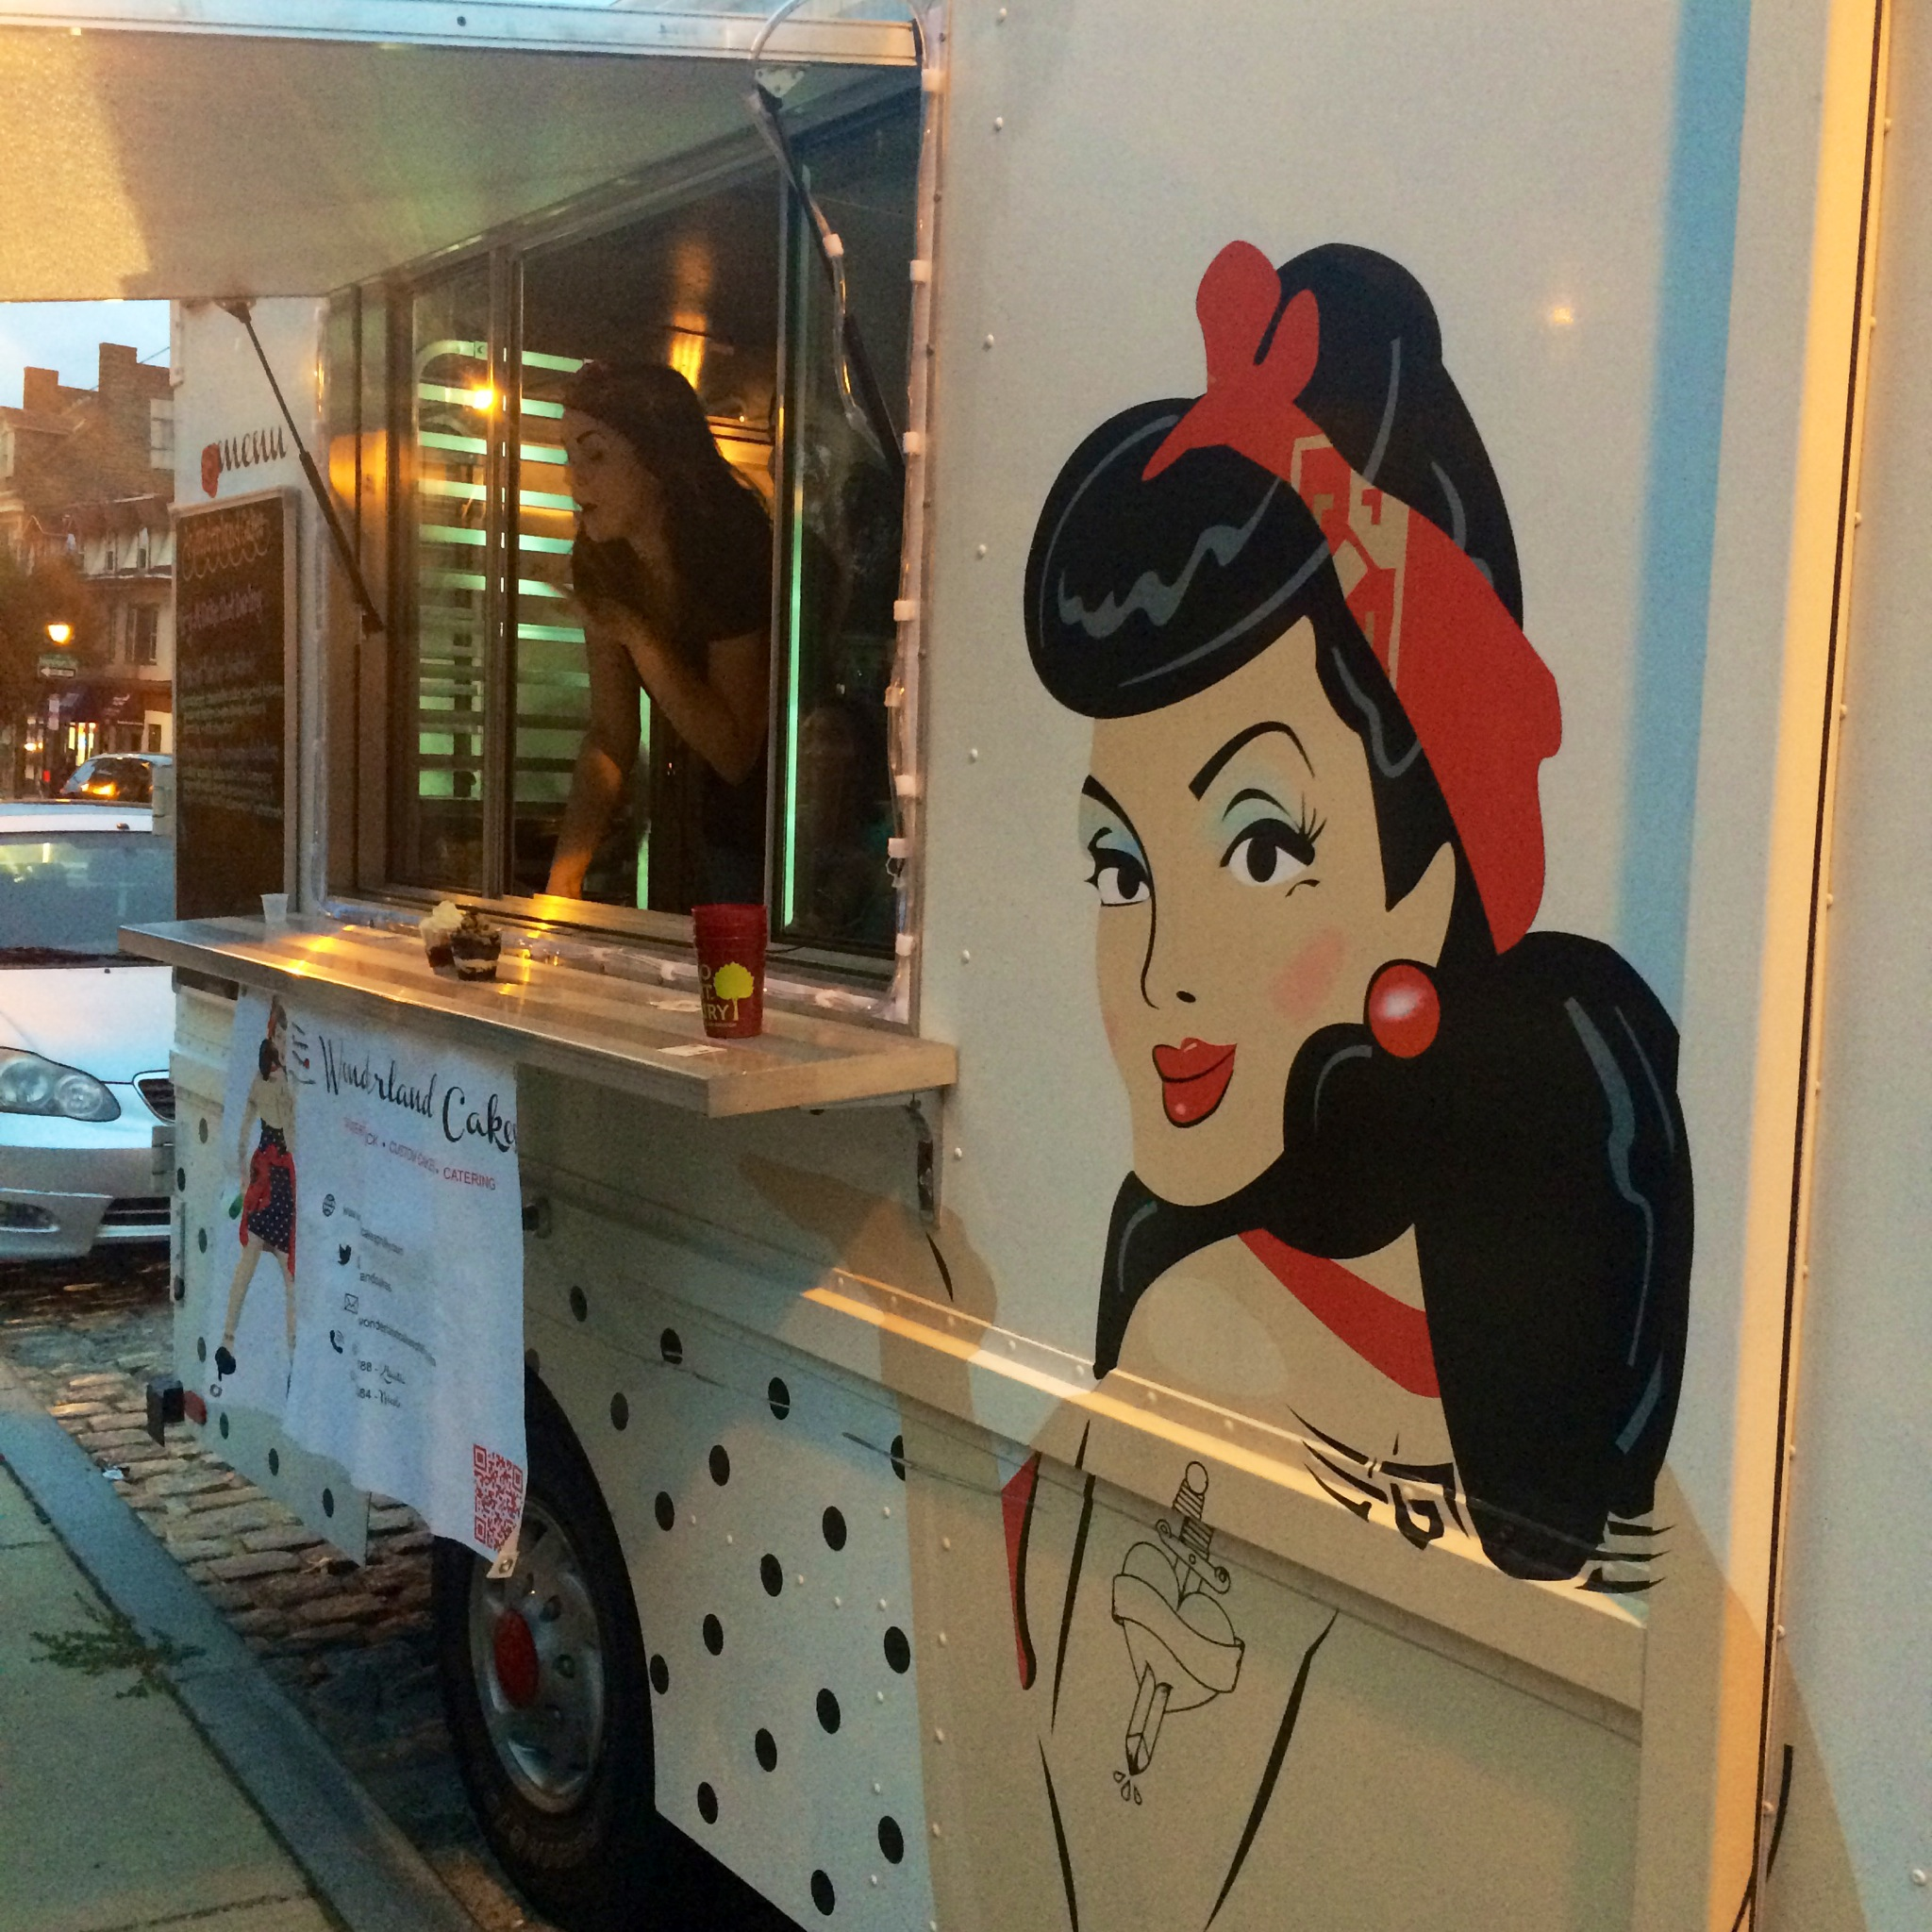 Wonderland Cakes Food Truck // Her Philly